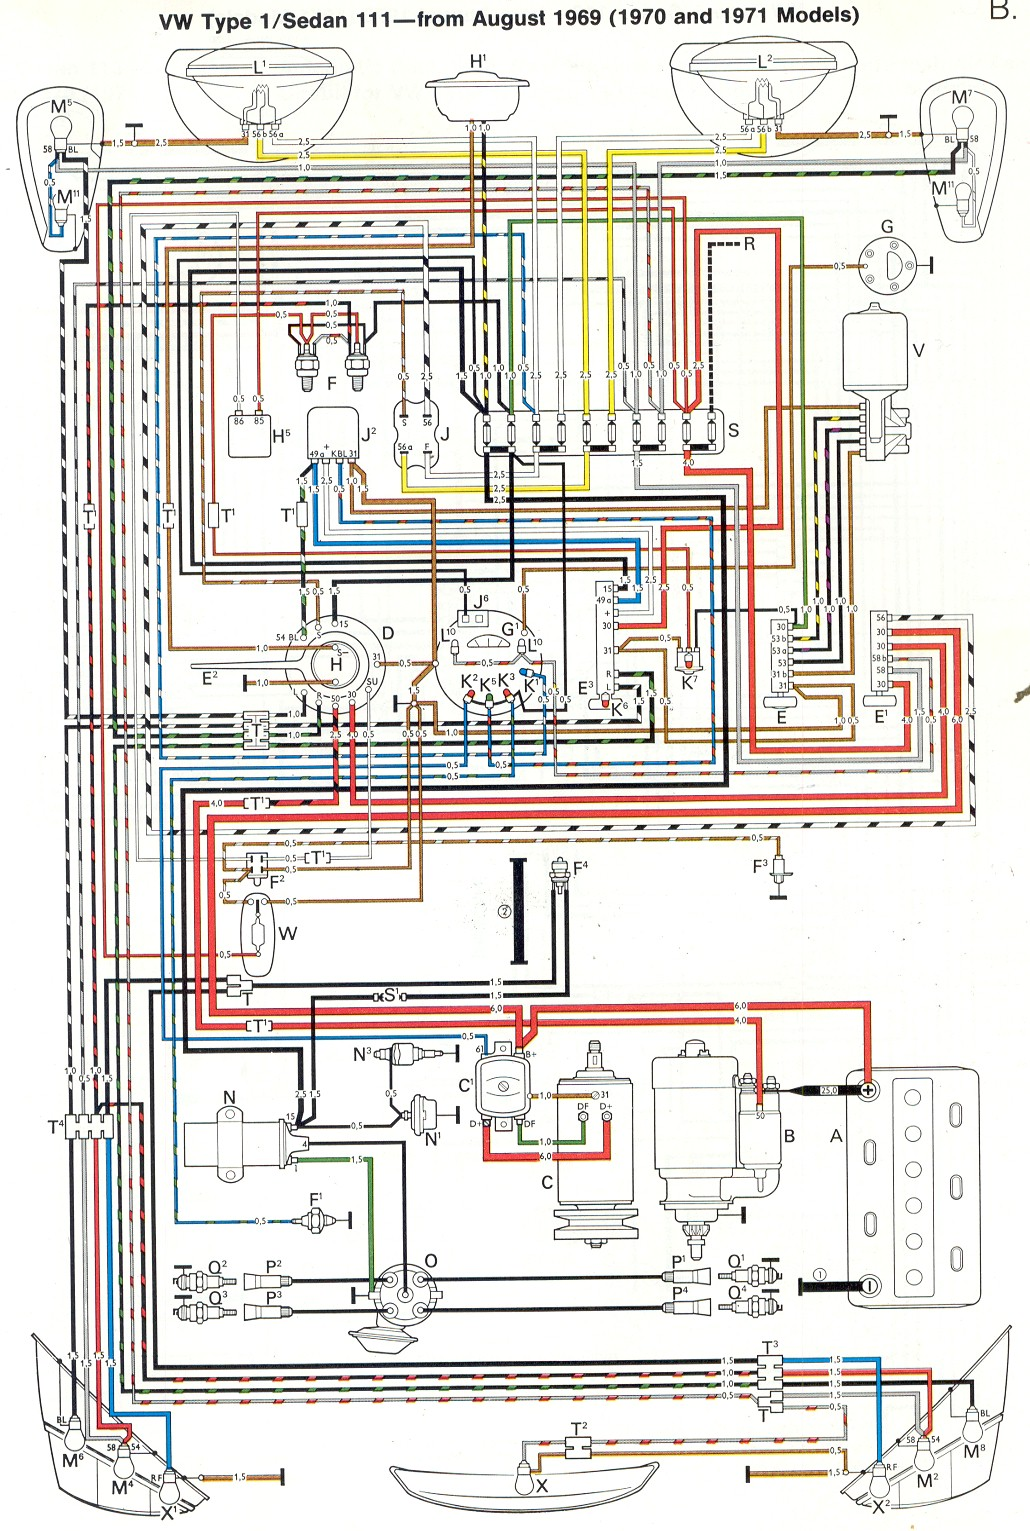 The entire wiring diagram for a 1970 VW Beetle fits on one sheet of